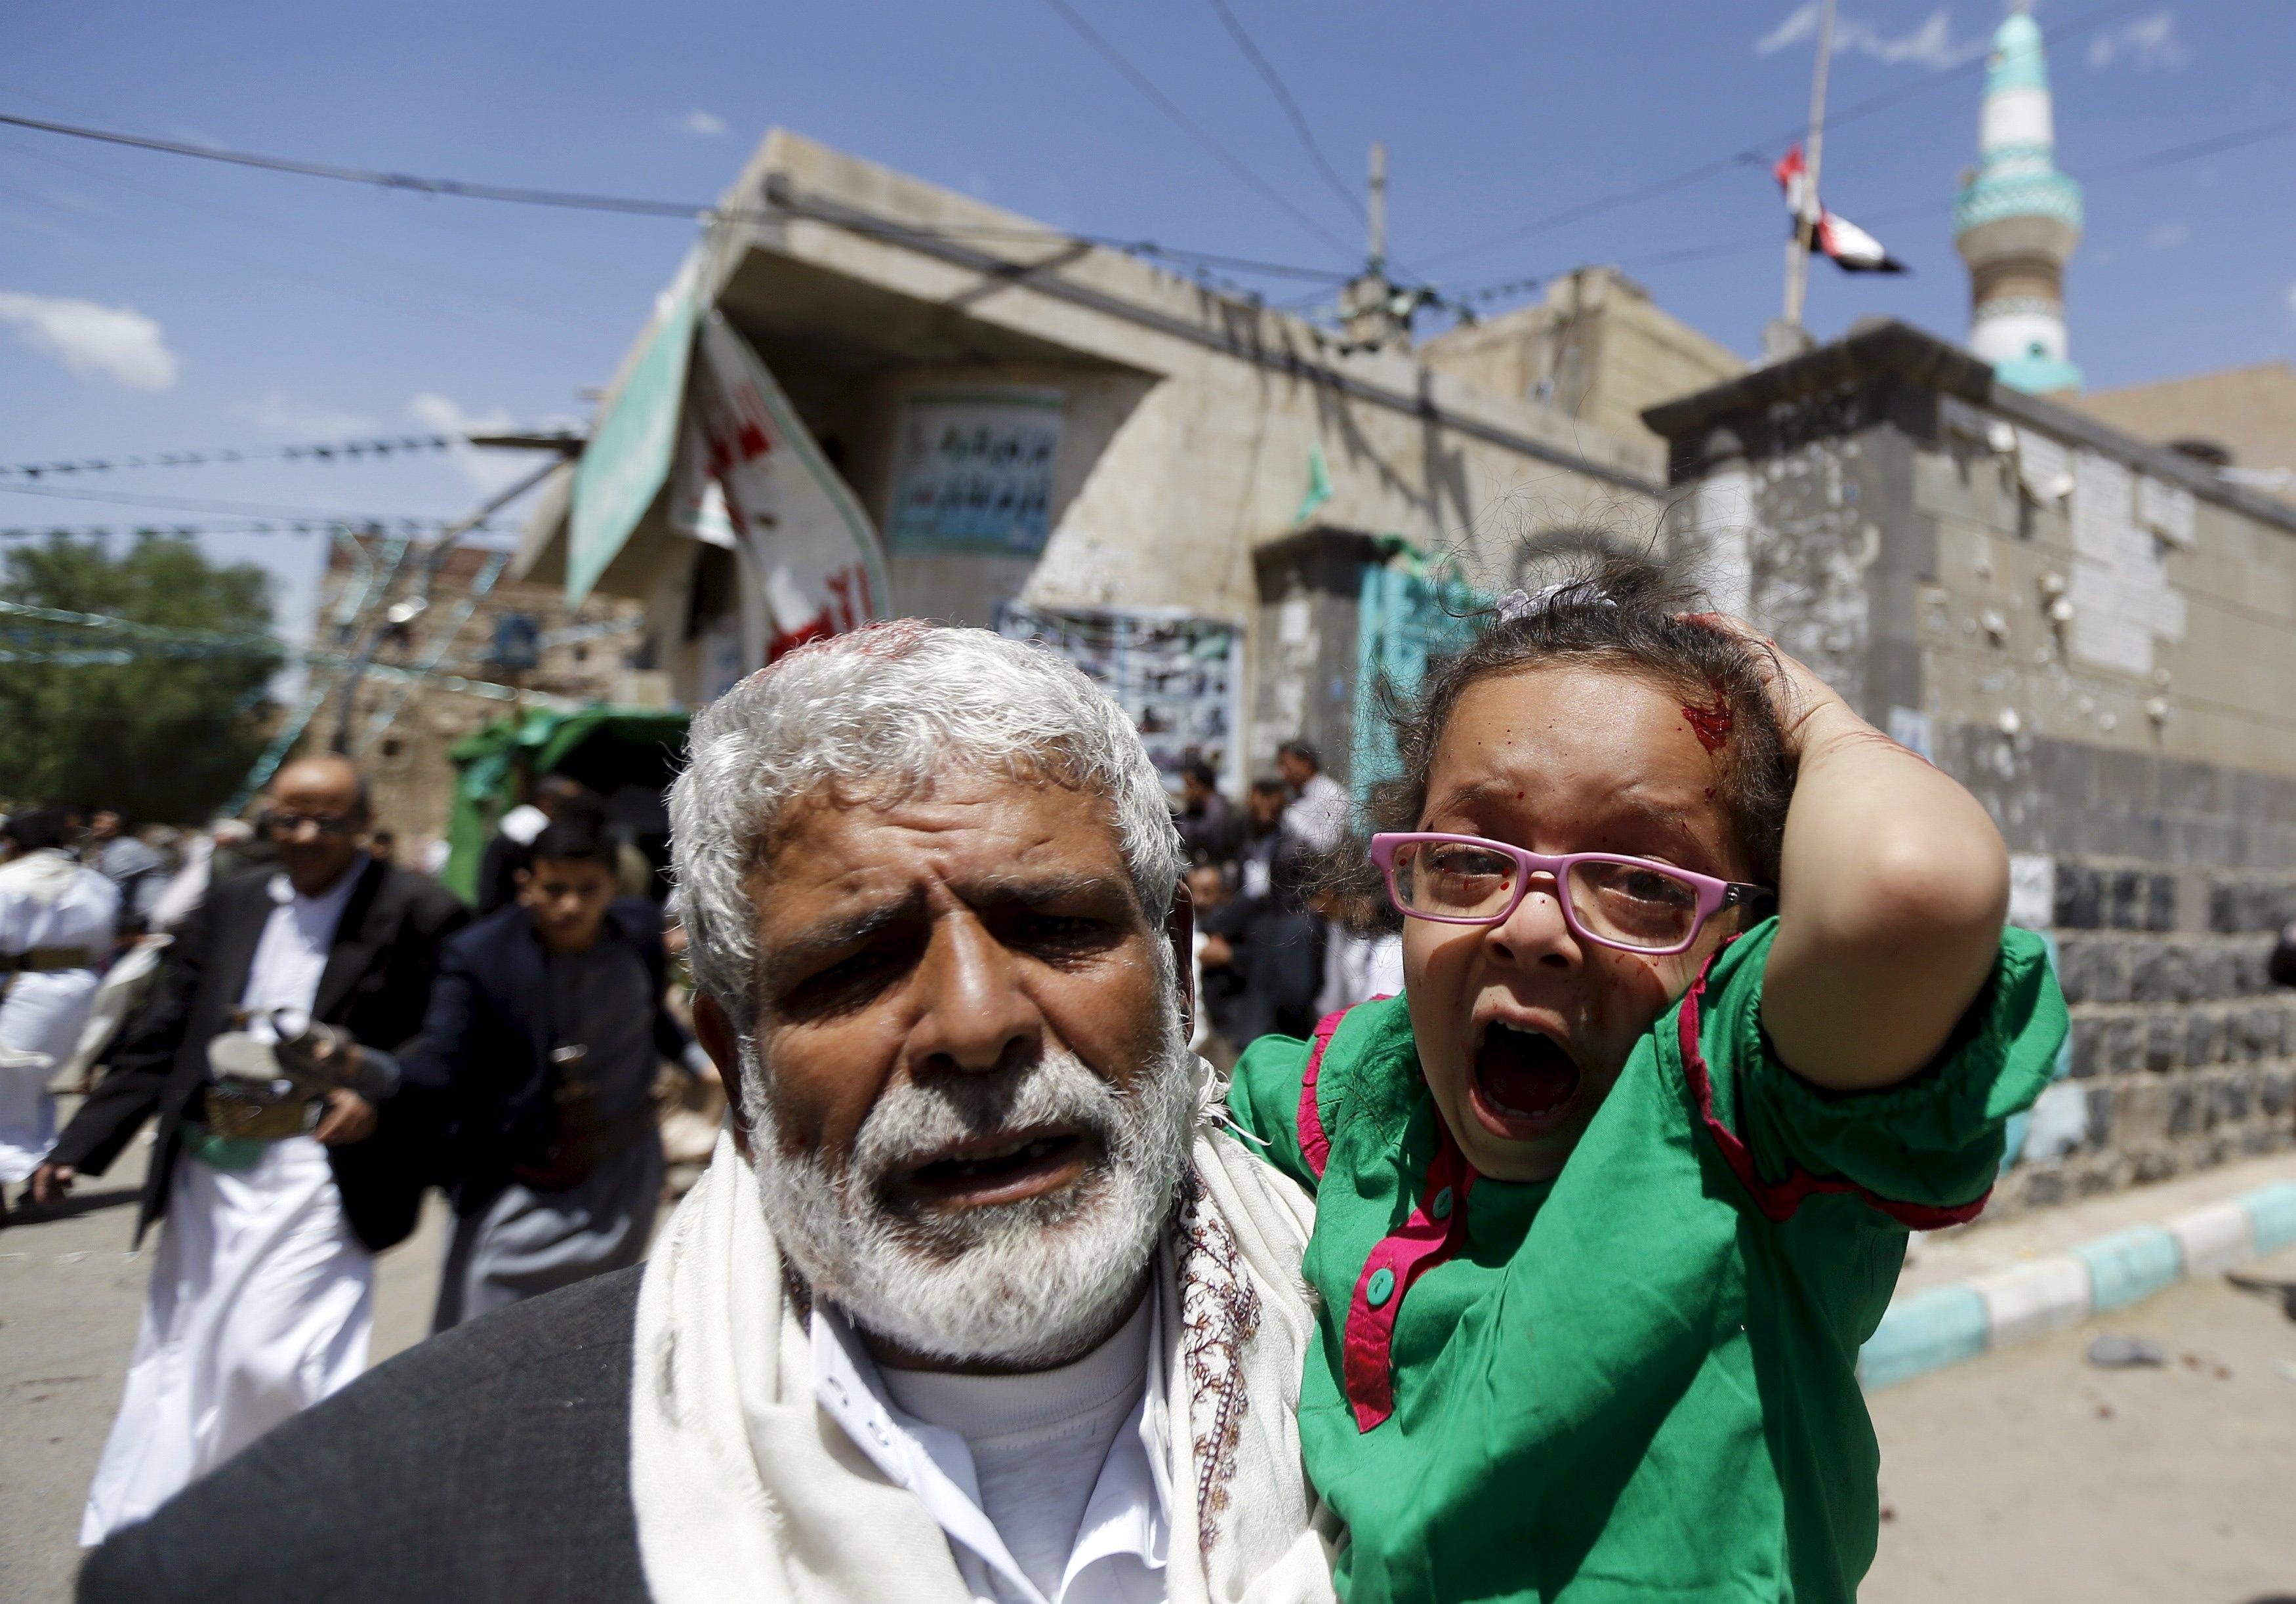 An injured girl reacts as she is carried by a man out of a mosque which was attacked by a suicide bomber in Sanaa March 20, 2015. At least 16 people were killed when suicide bombers blew themselves up in two mosques in the Yemeni capital Sanaa on Friday during noon prayers, medical sources told Reuters. The mosques are known to be used mainly by supporters of the Shi'ite Muslim Houthi group which has seized control of the government. REUTERS/Khaled Abdullah